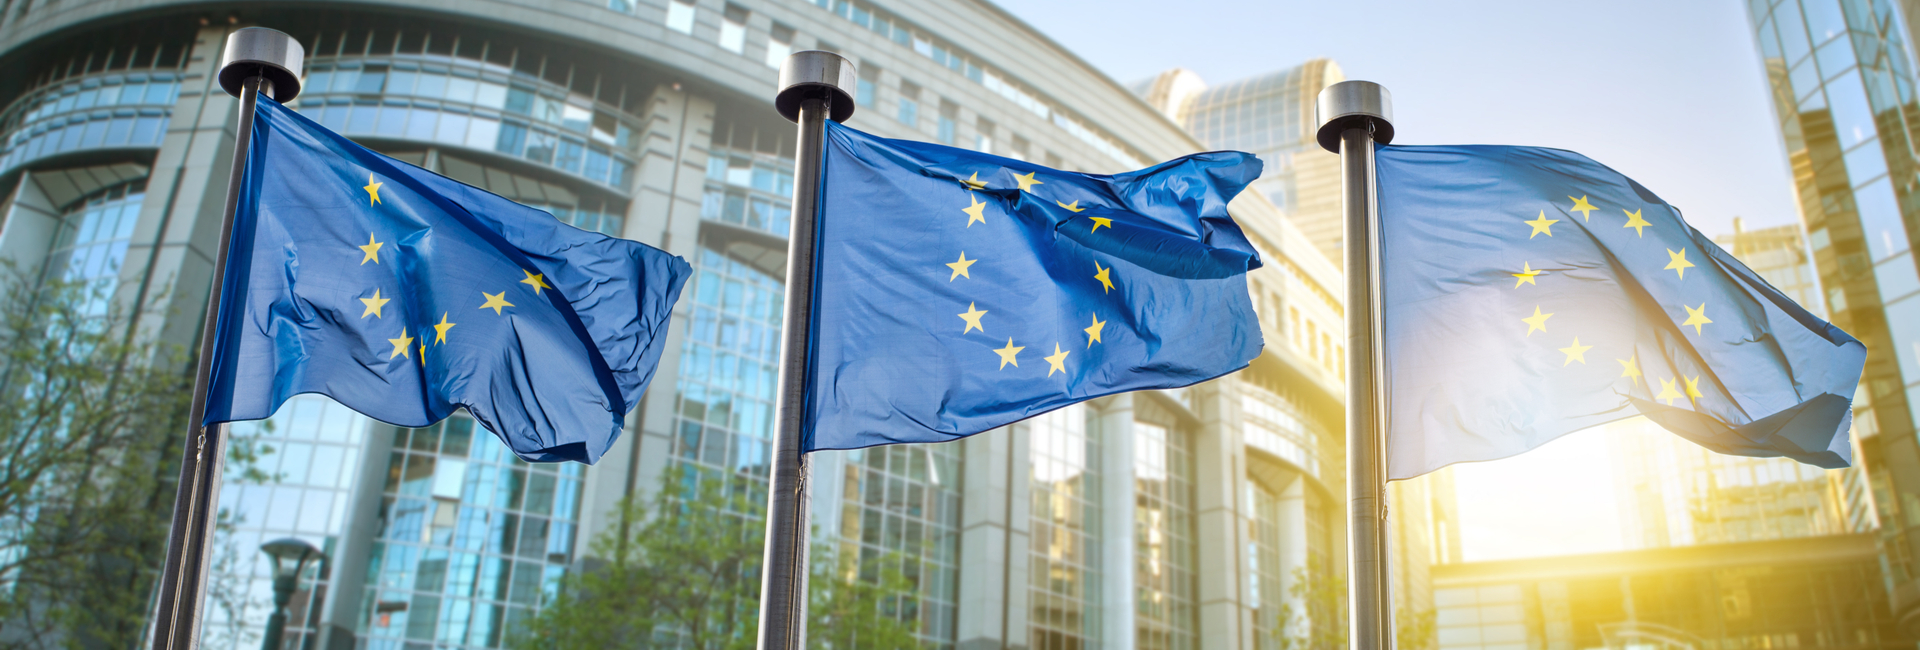 three European Union flags outside of the European Parliament in Brussels